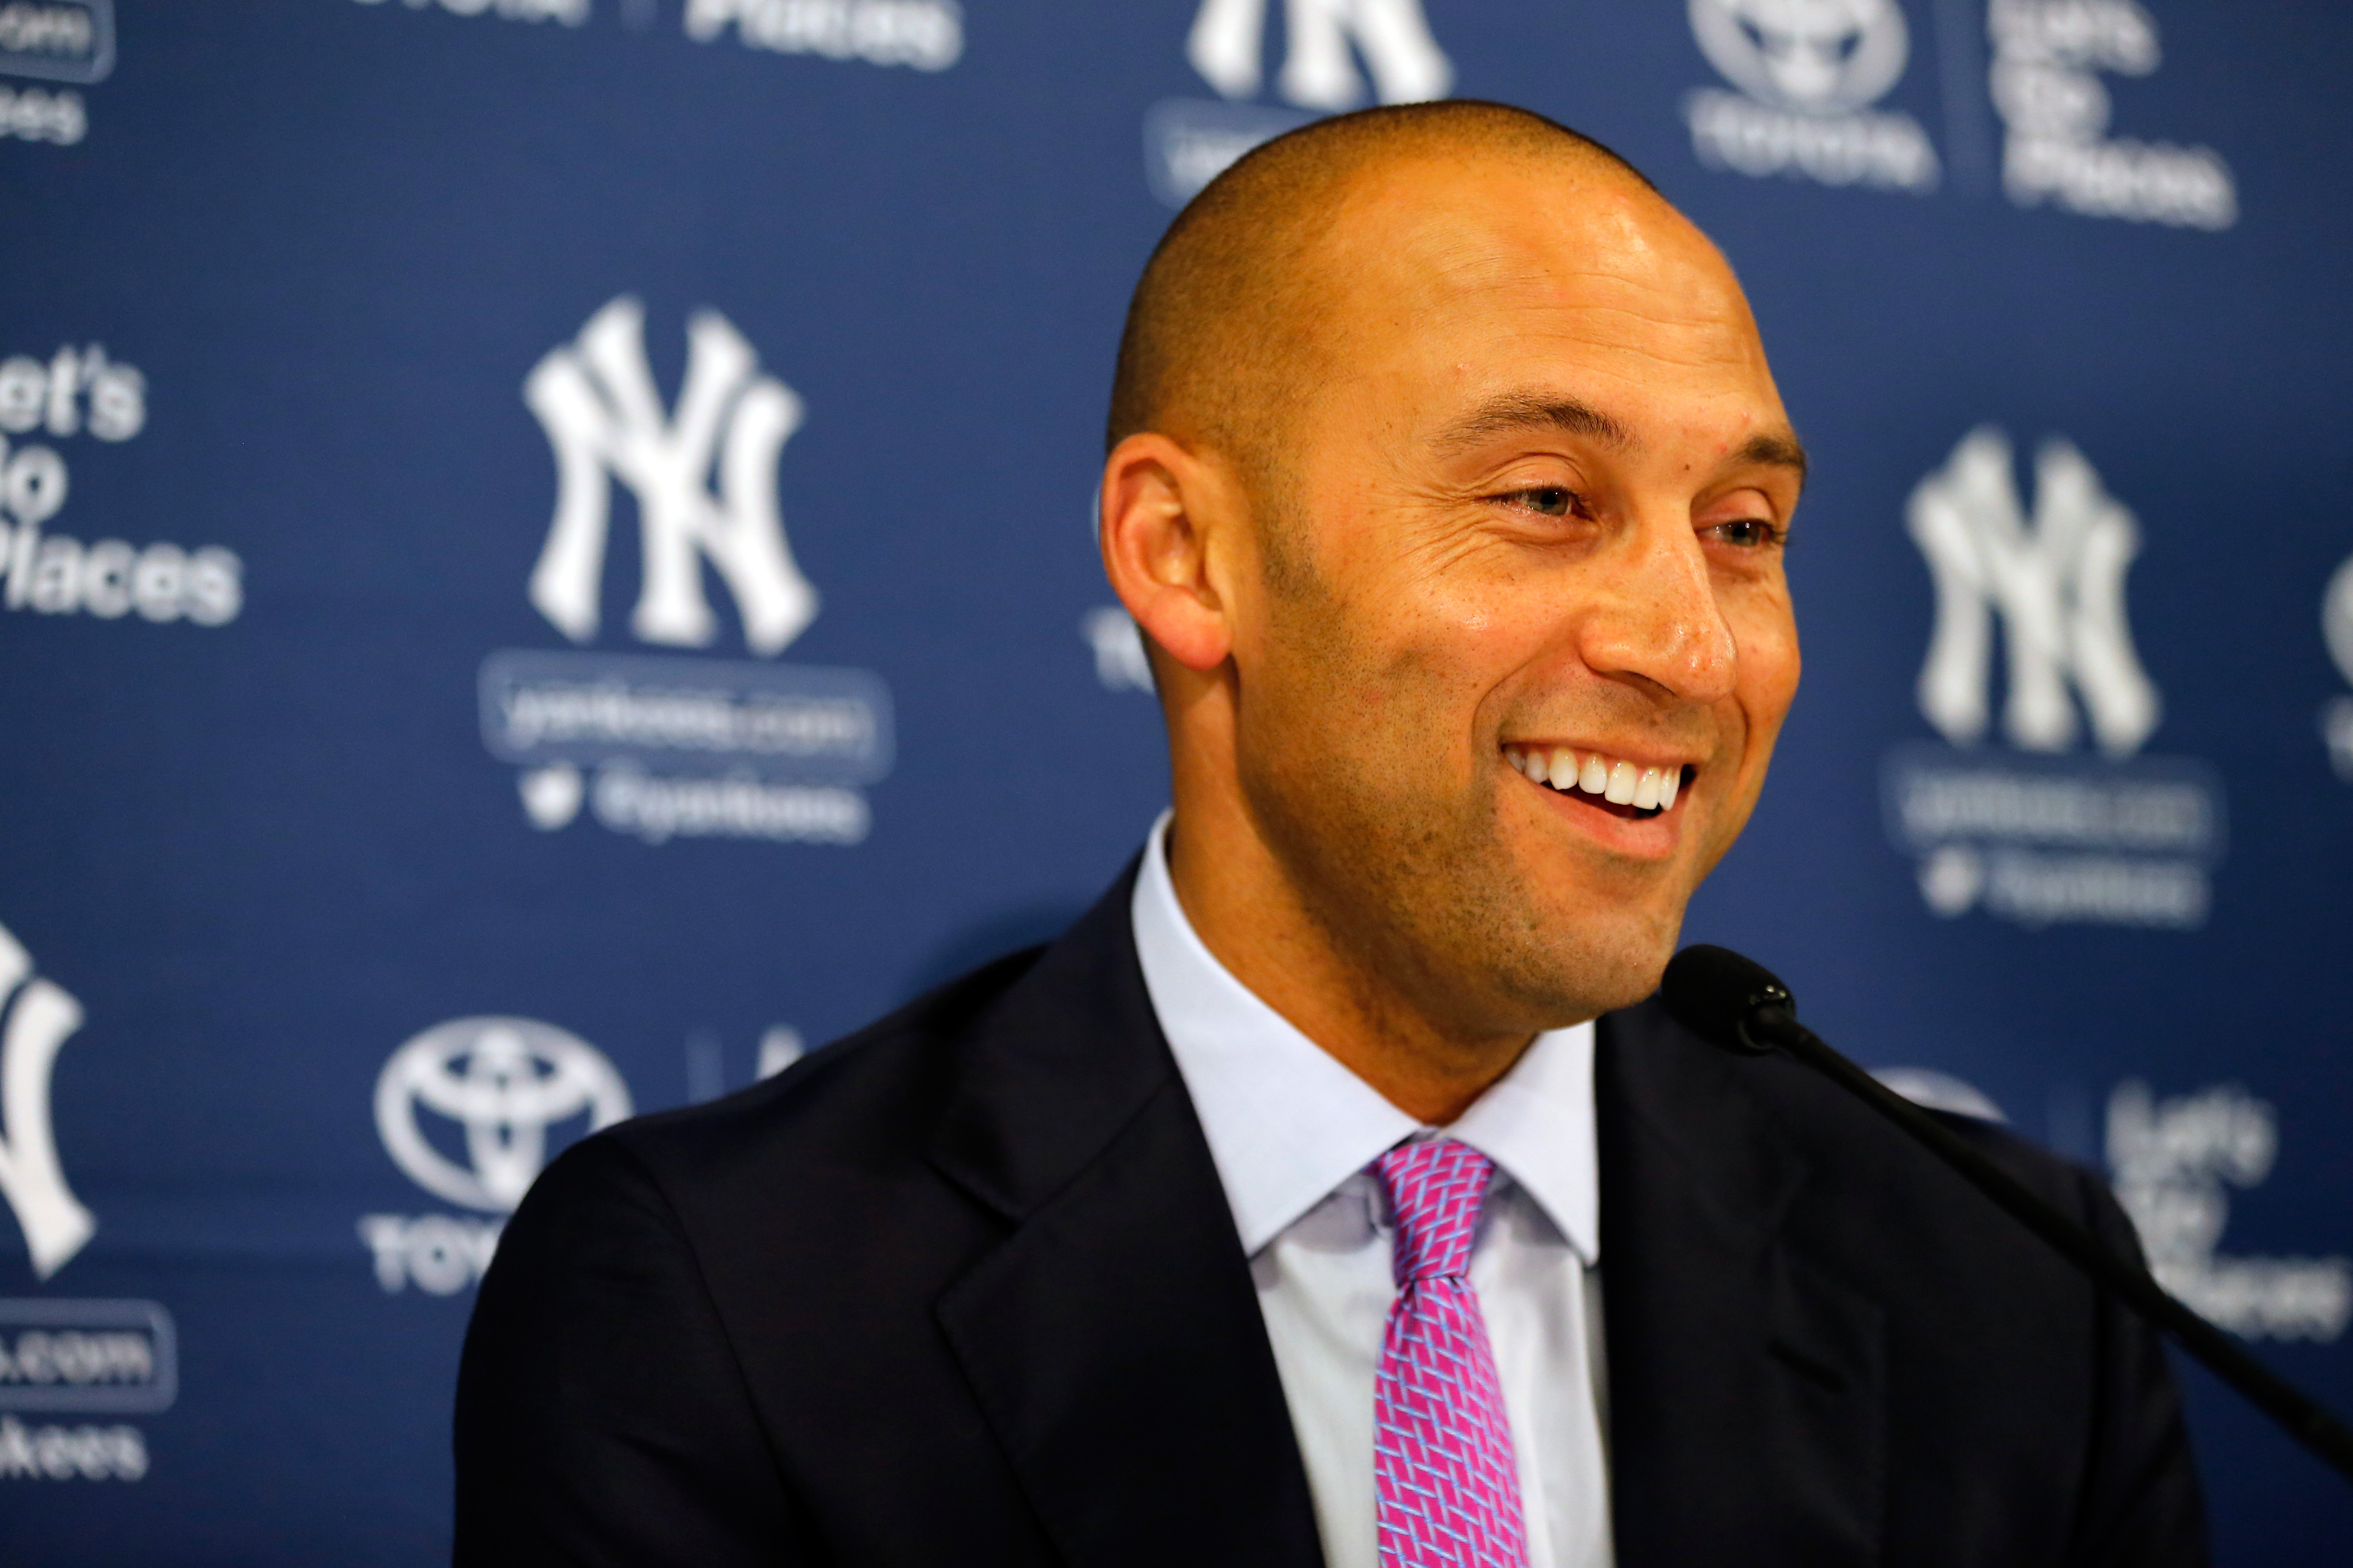 Derek Jeter speaks to the media following his last career game against the Boston Red Sox at Fenway Park on September 28, 2014 in Boston.